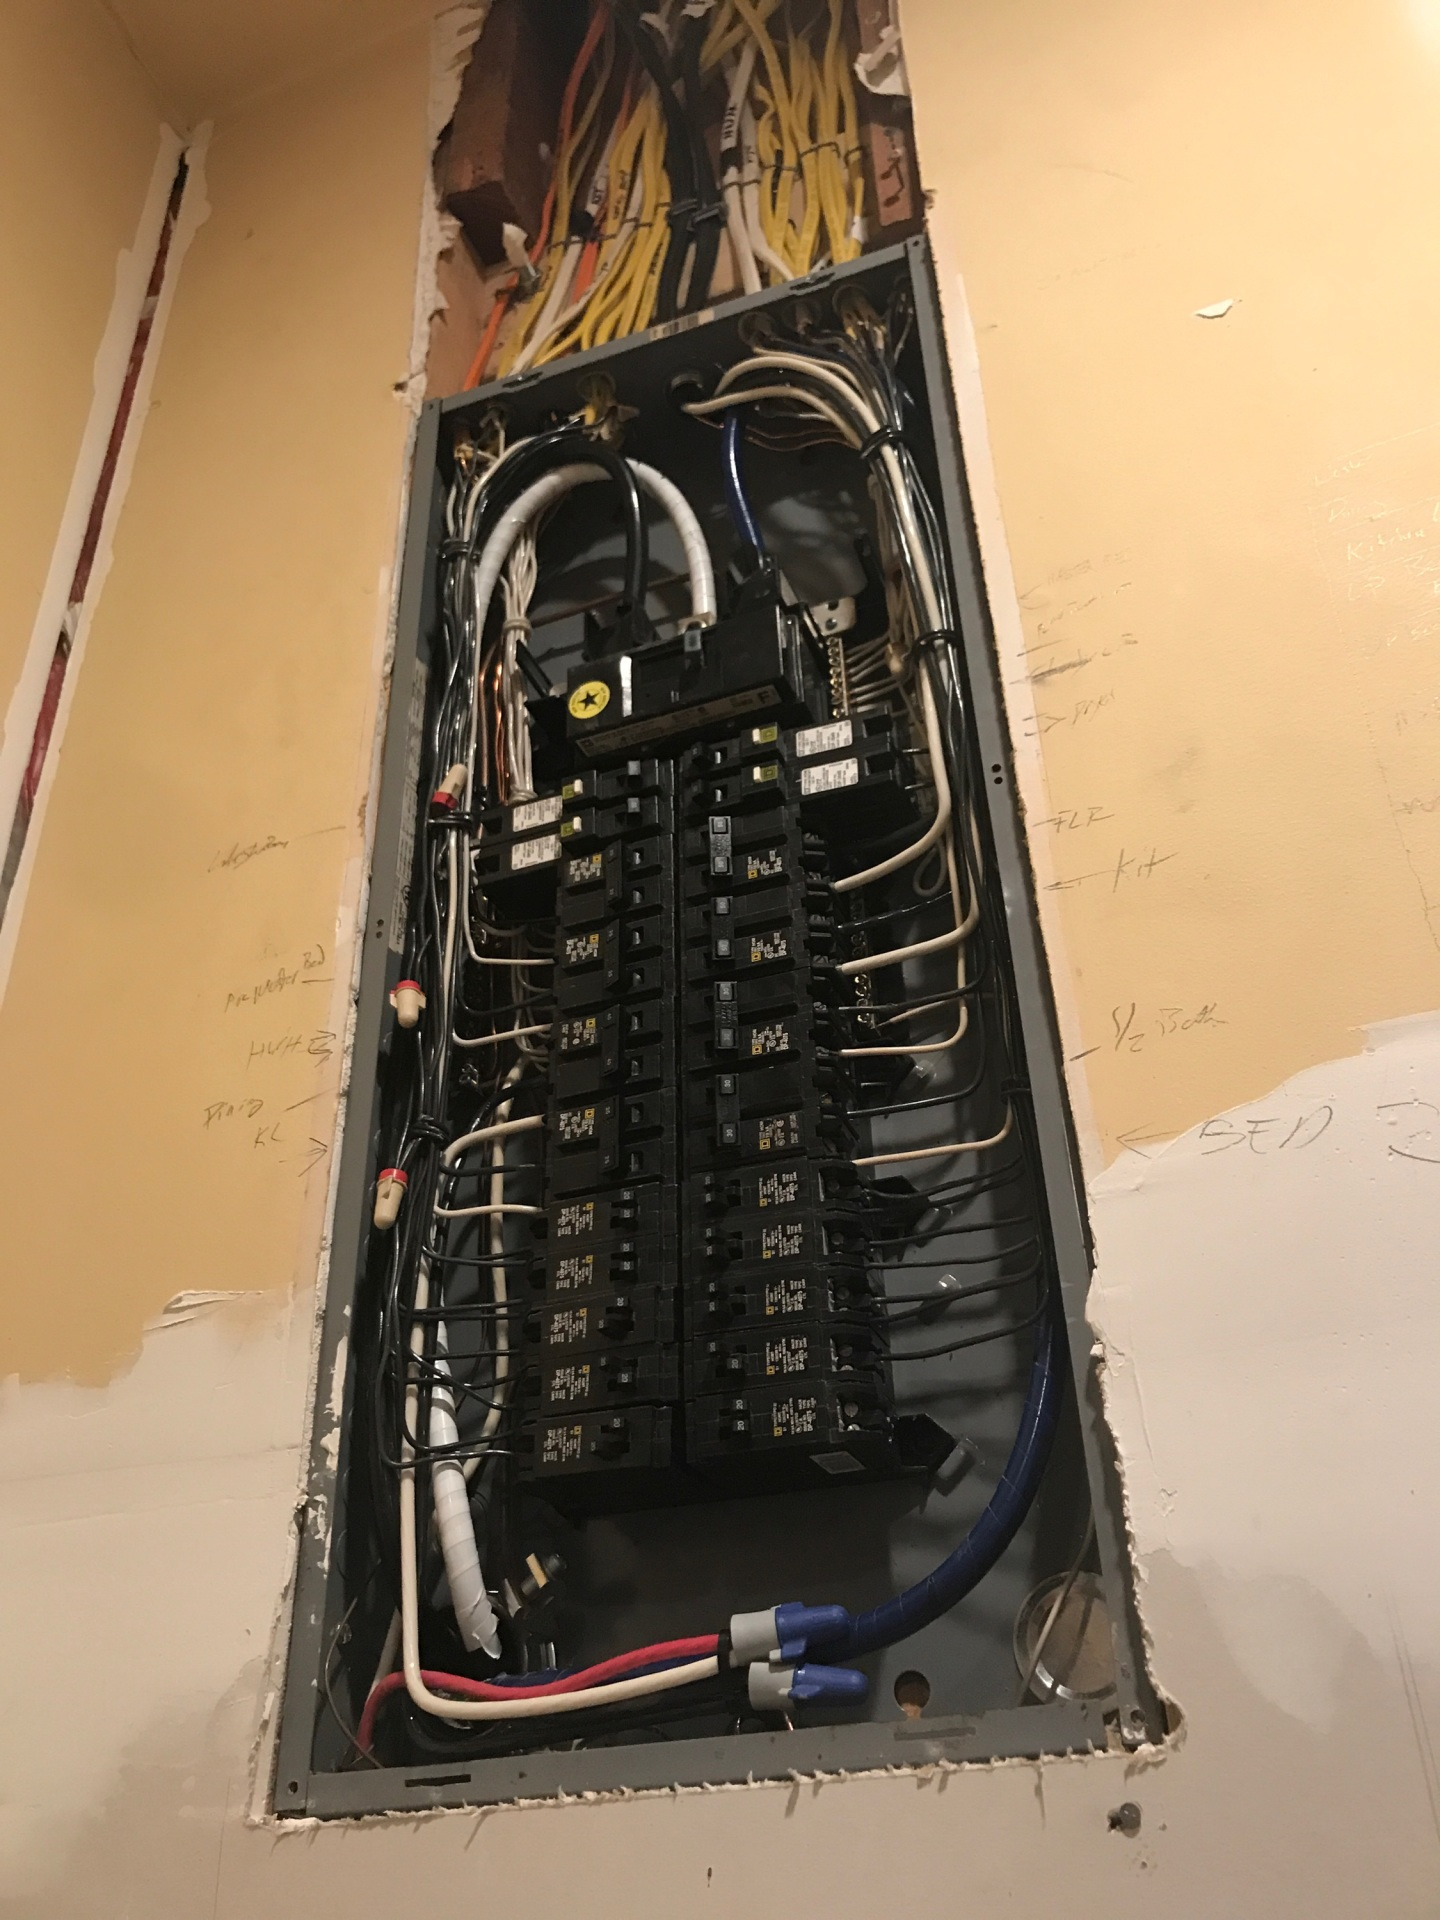 Kirkpatrick Homes - electrical wiring work after results